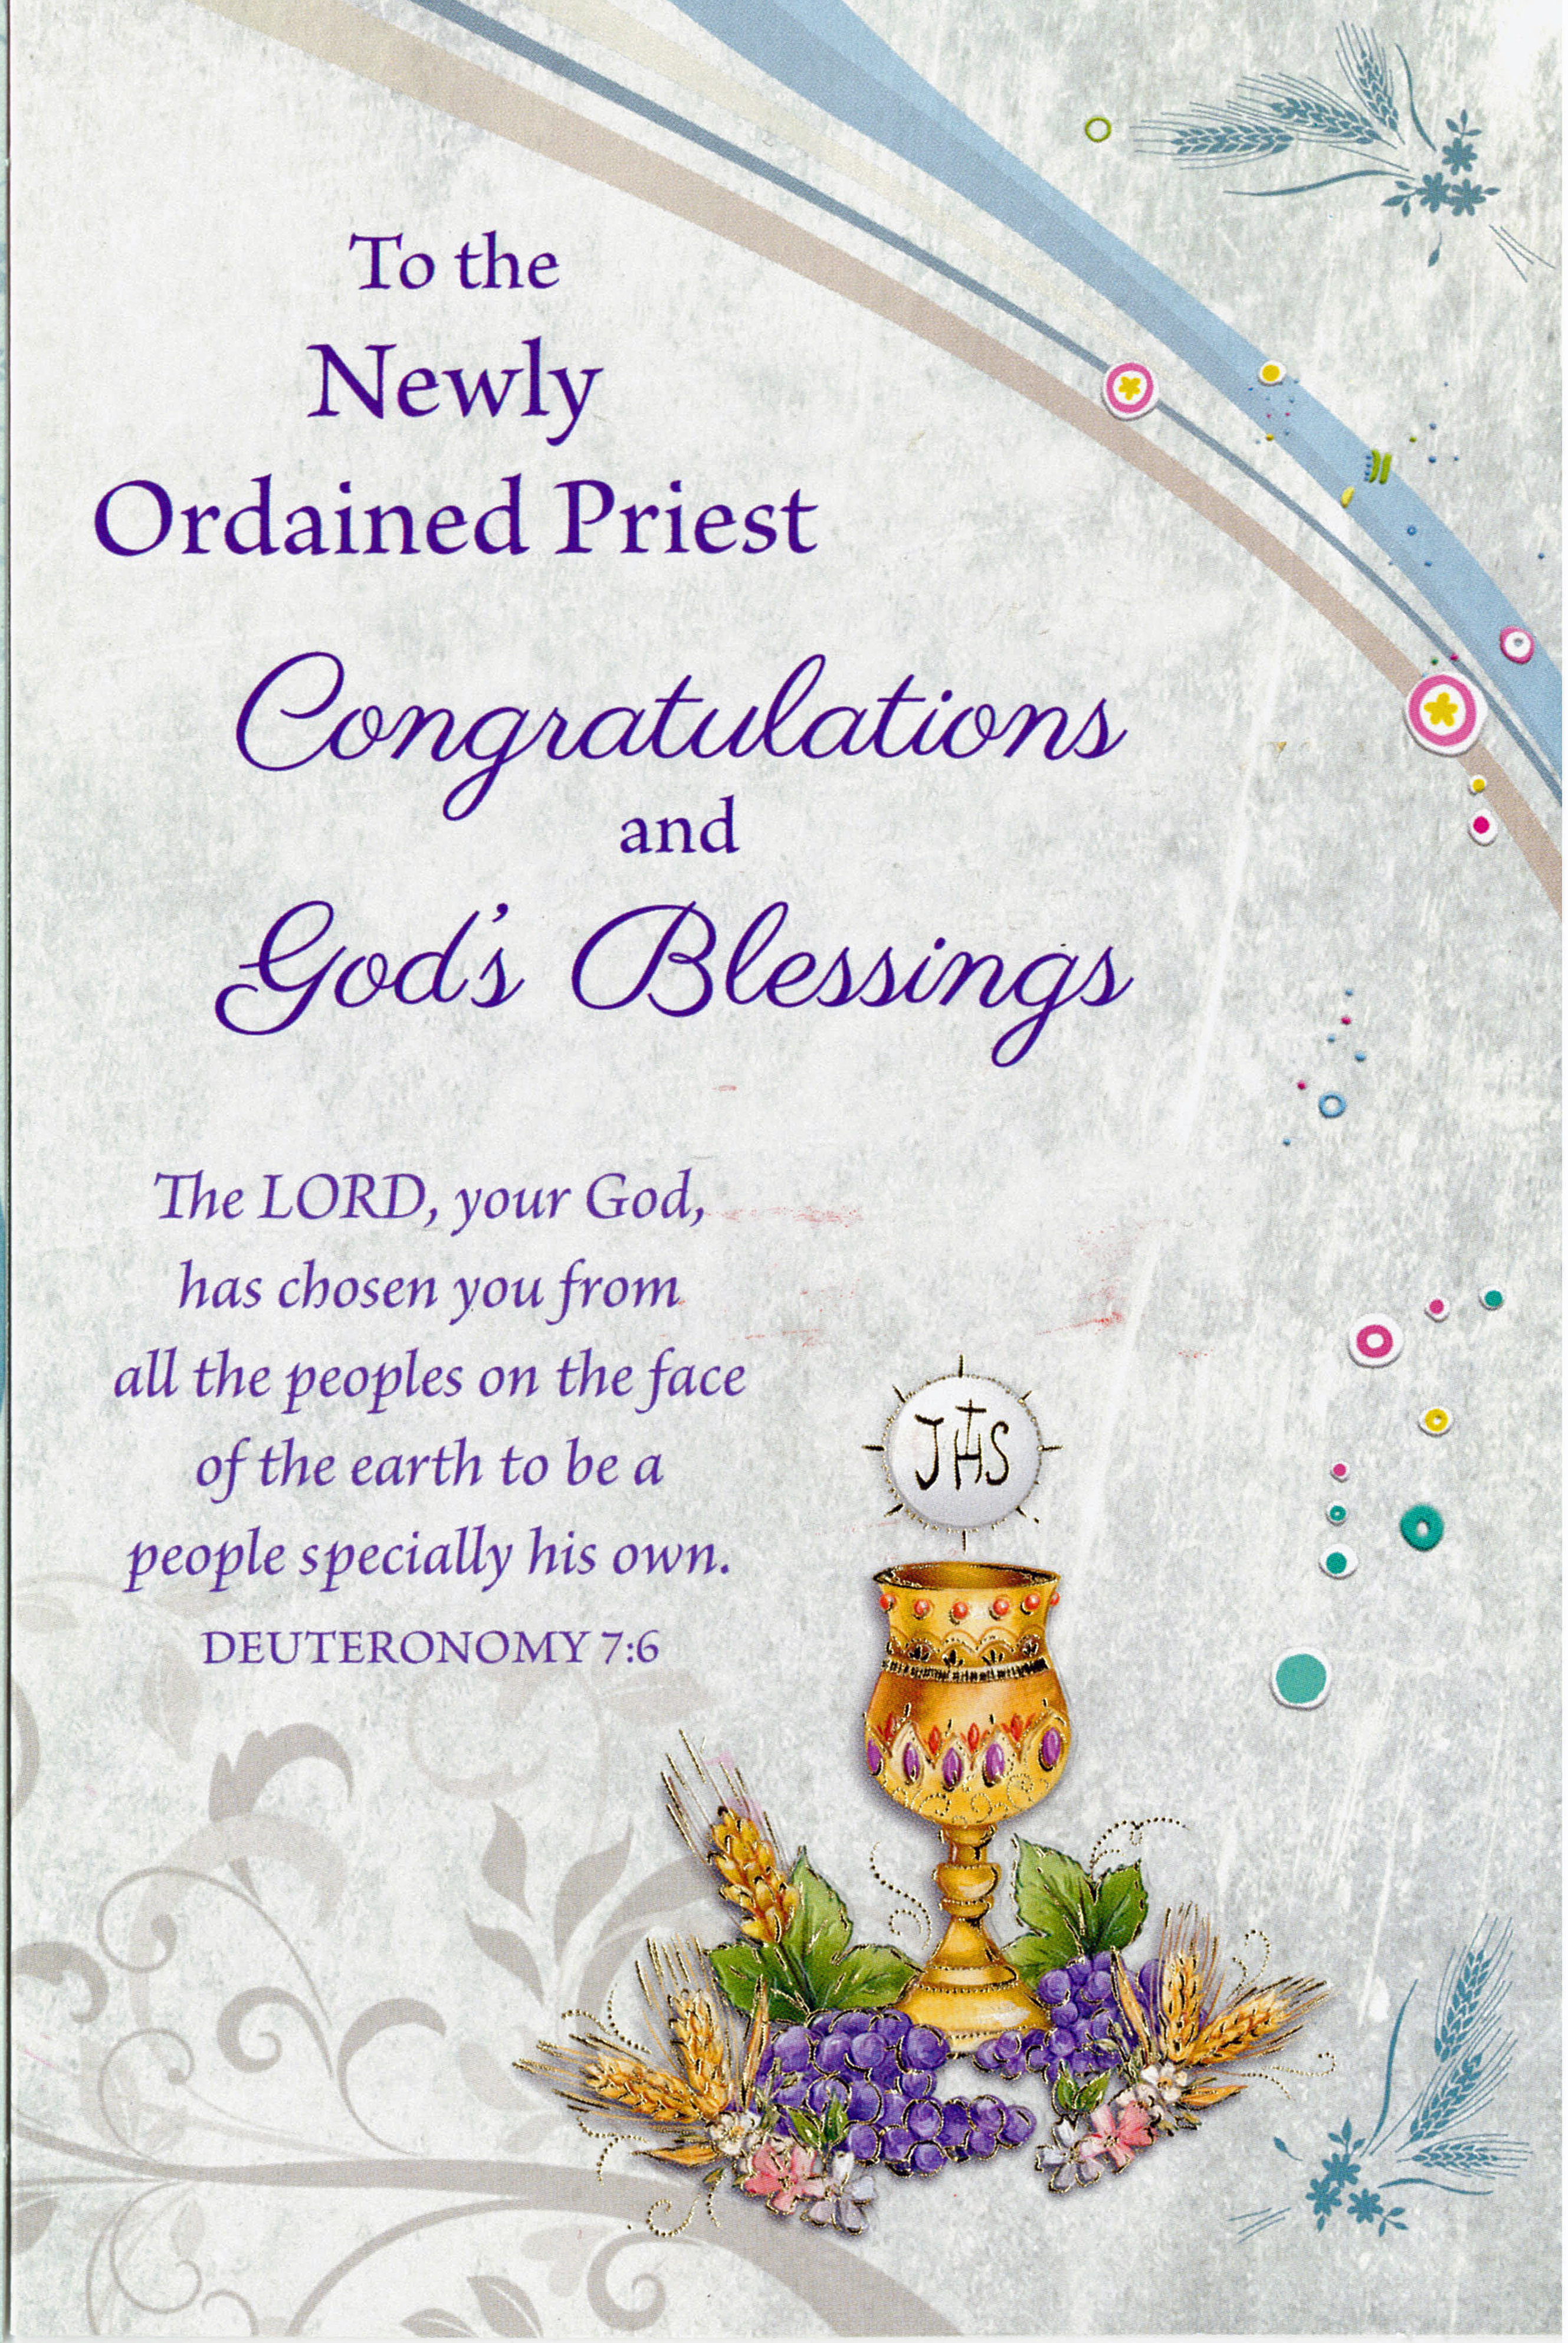 To The Newly Ordained Priest 238-ORD89990